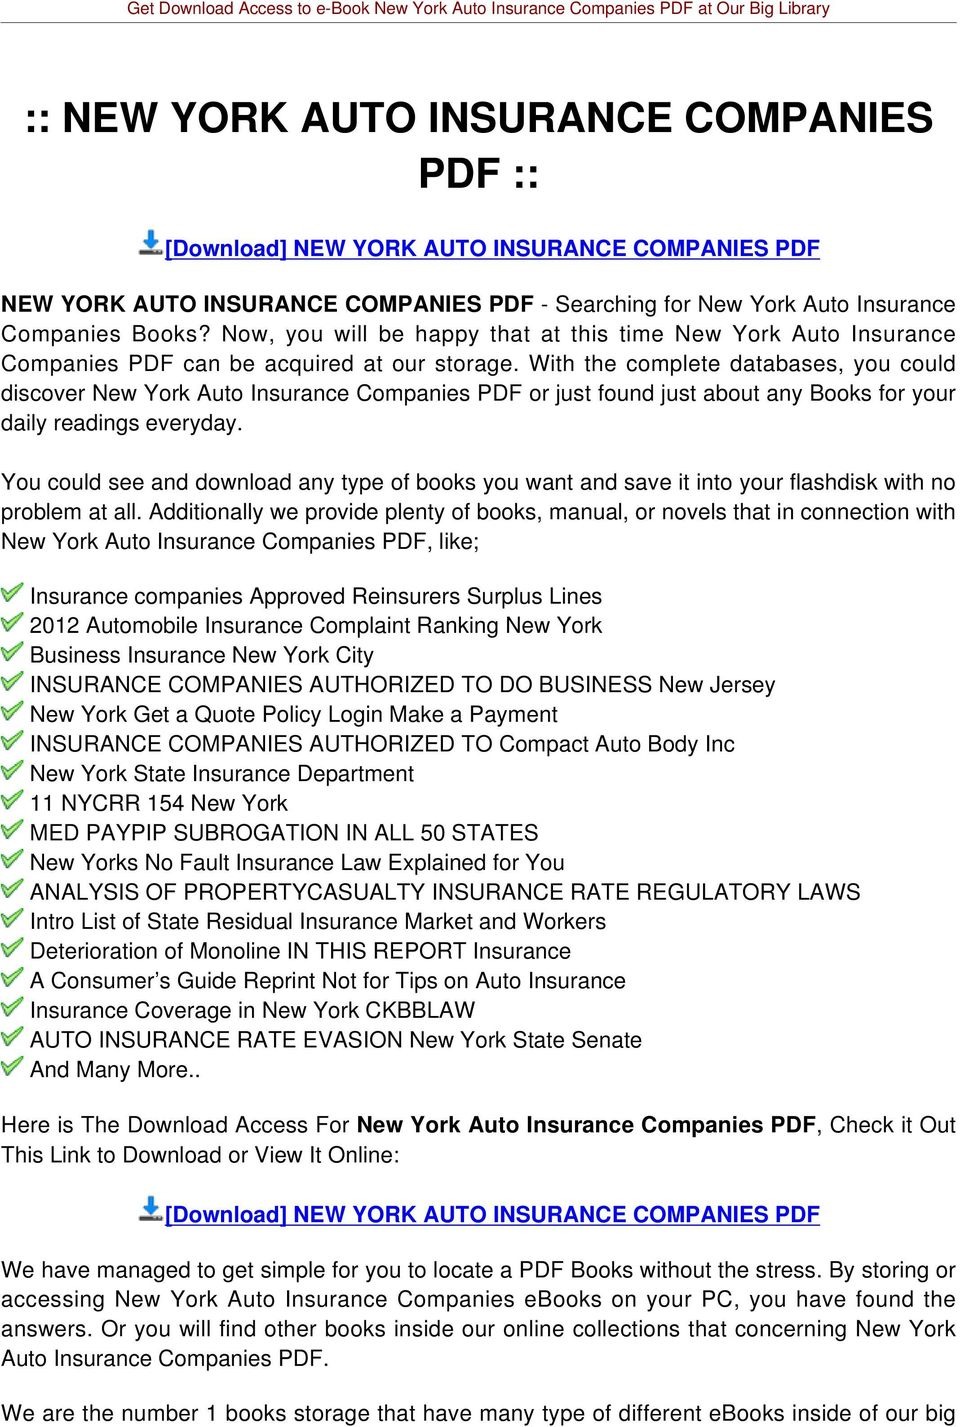 With the complete databases, you could discover New York Auto Insurance Companies PDF or just found just about any Books for your daily readings everyday.